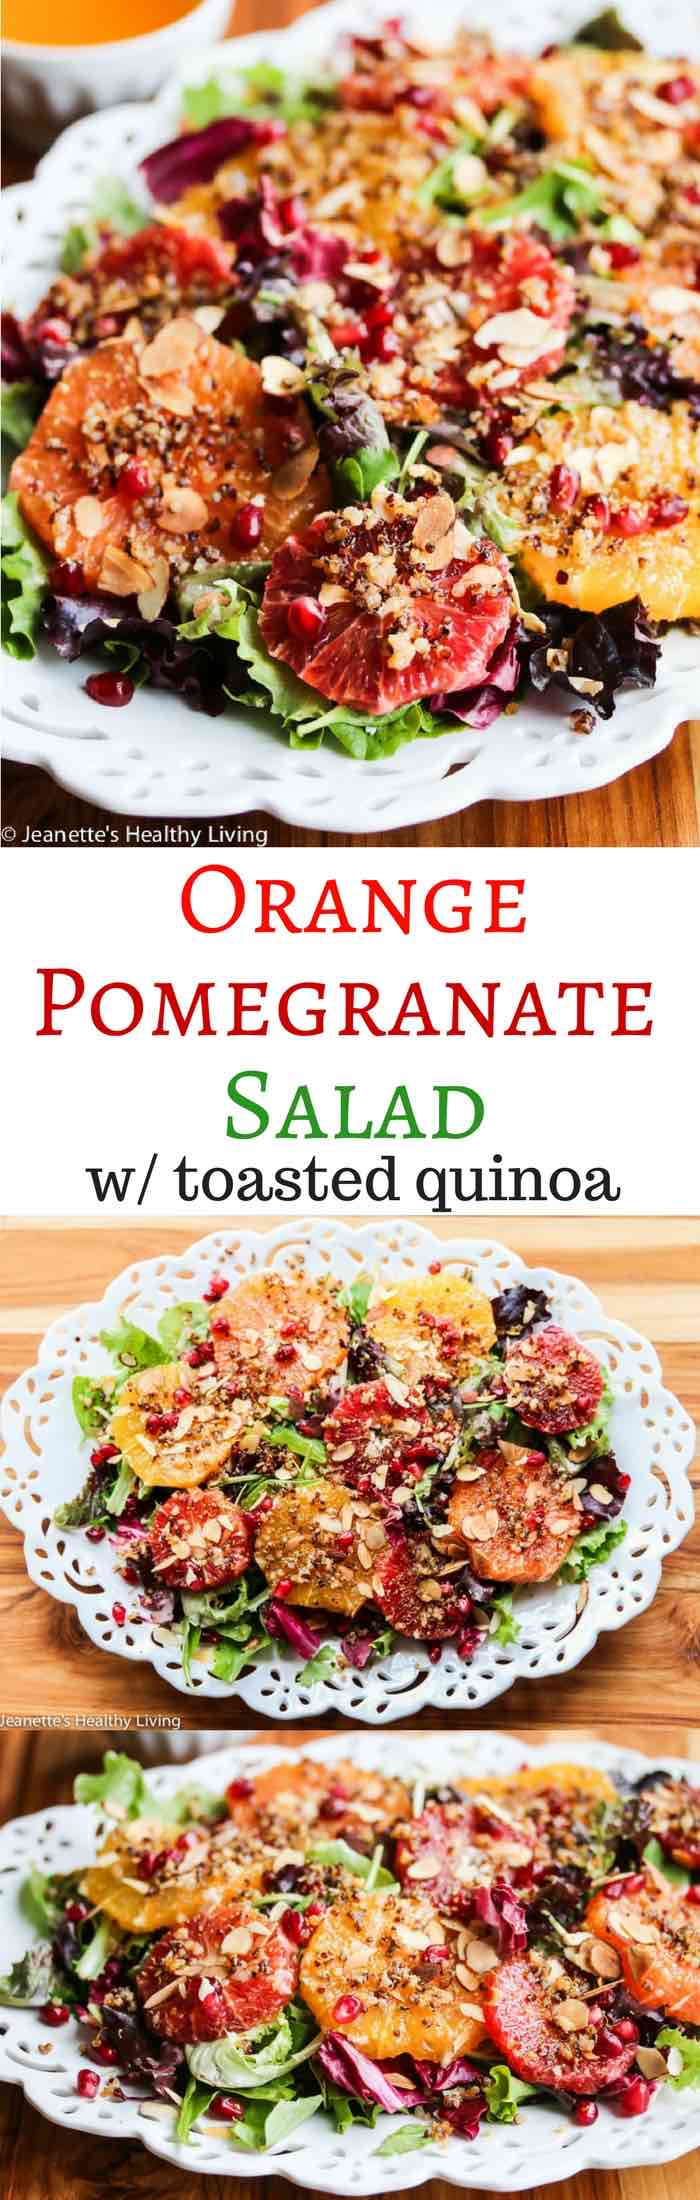 Orange Pomegranate Salad with fennel pollen and toasted quinoa - festive and delicious holiday salad